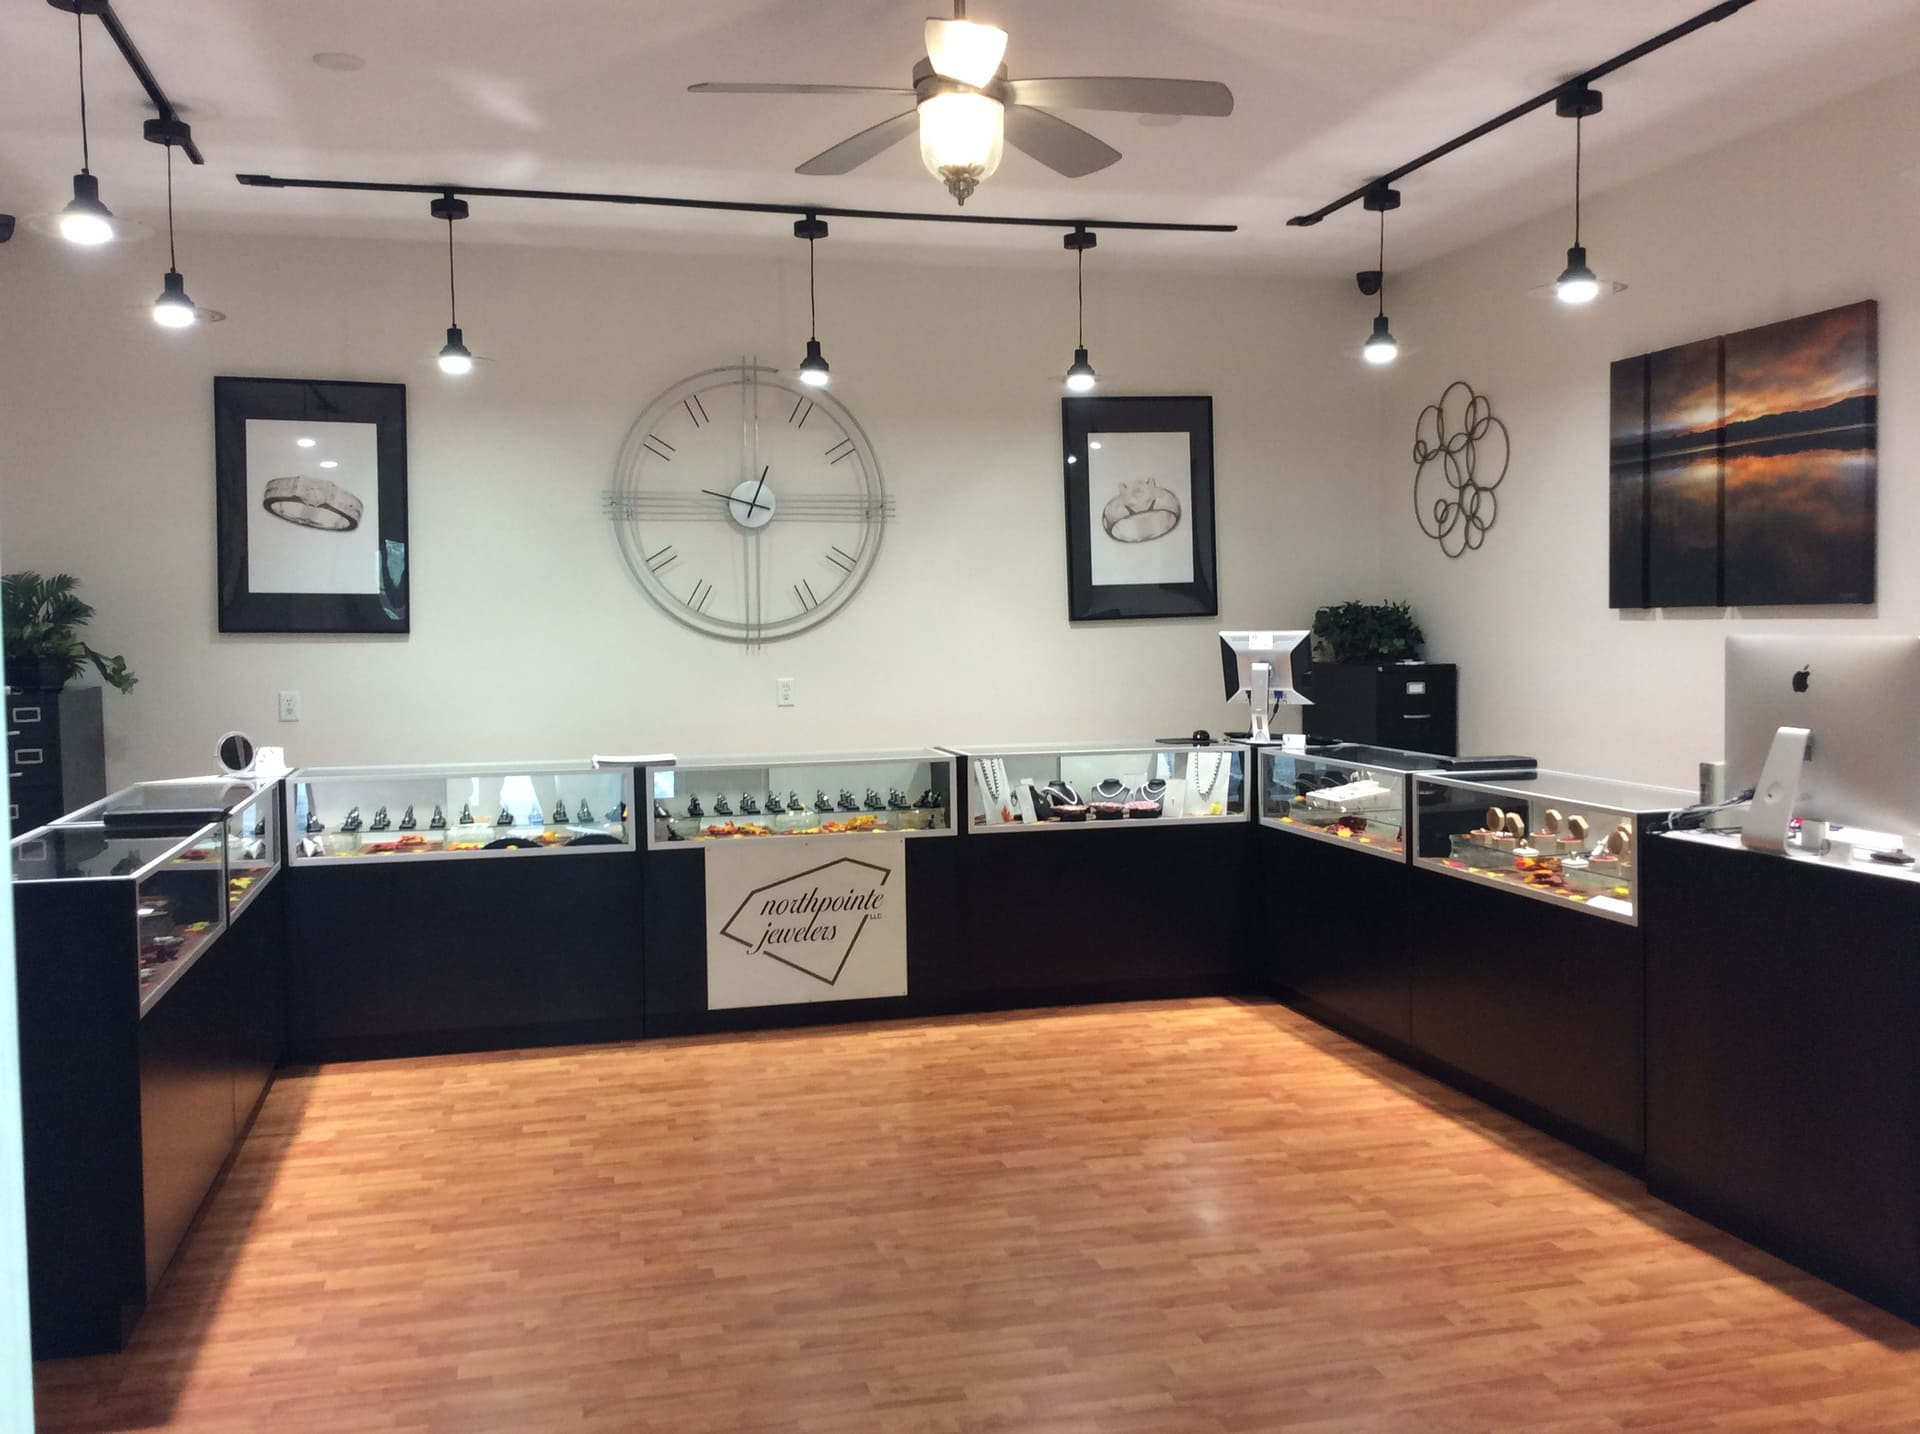 Northpointe-Jewelers-Interior